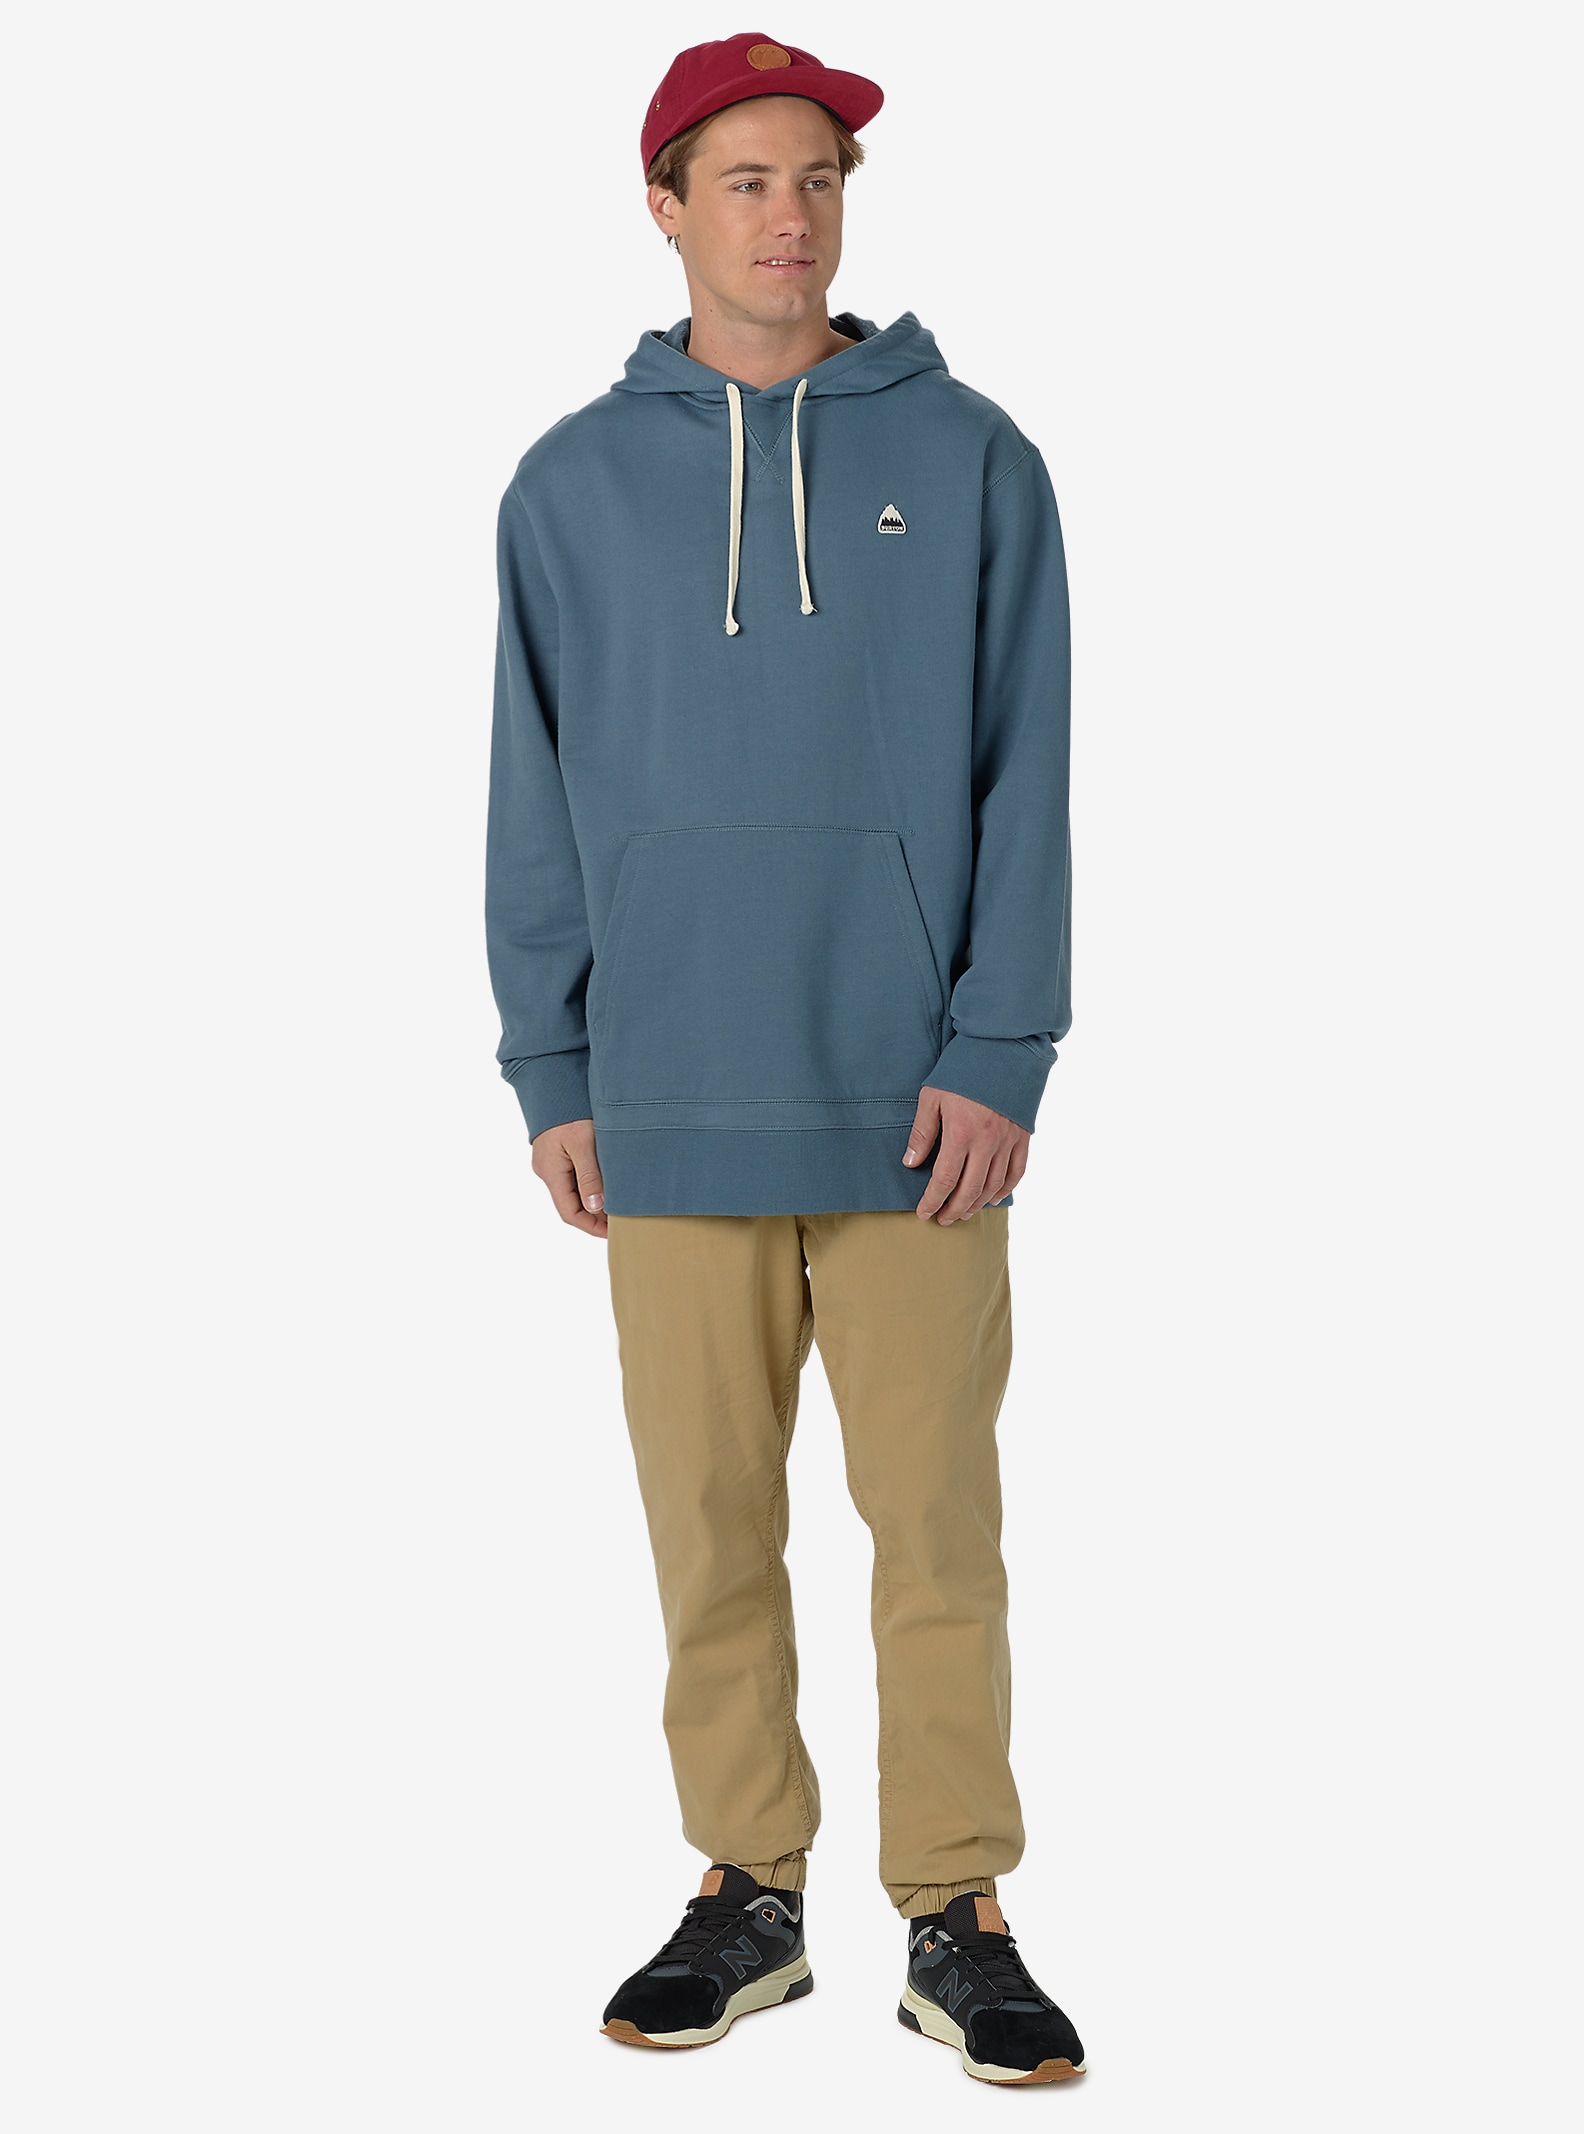 Burton Roe Pullover Hoodie shown in Blue Mirage